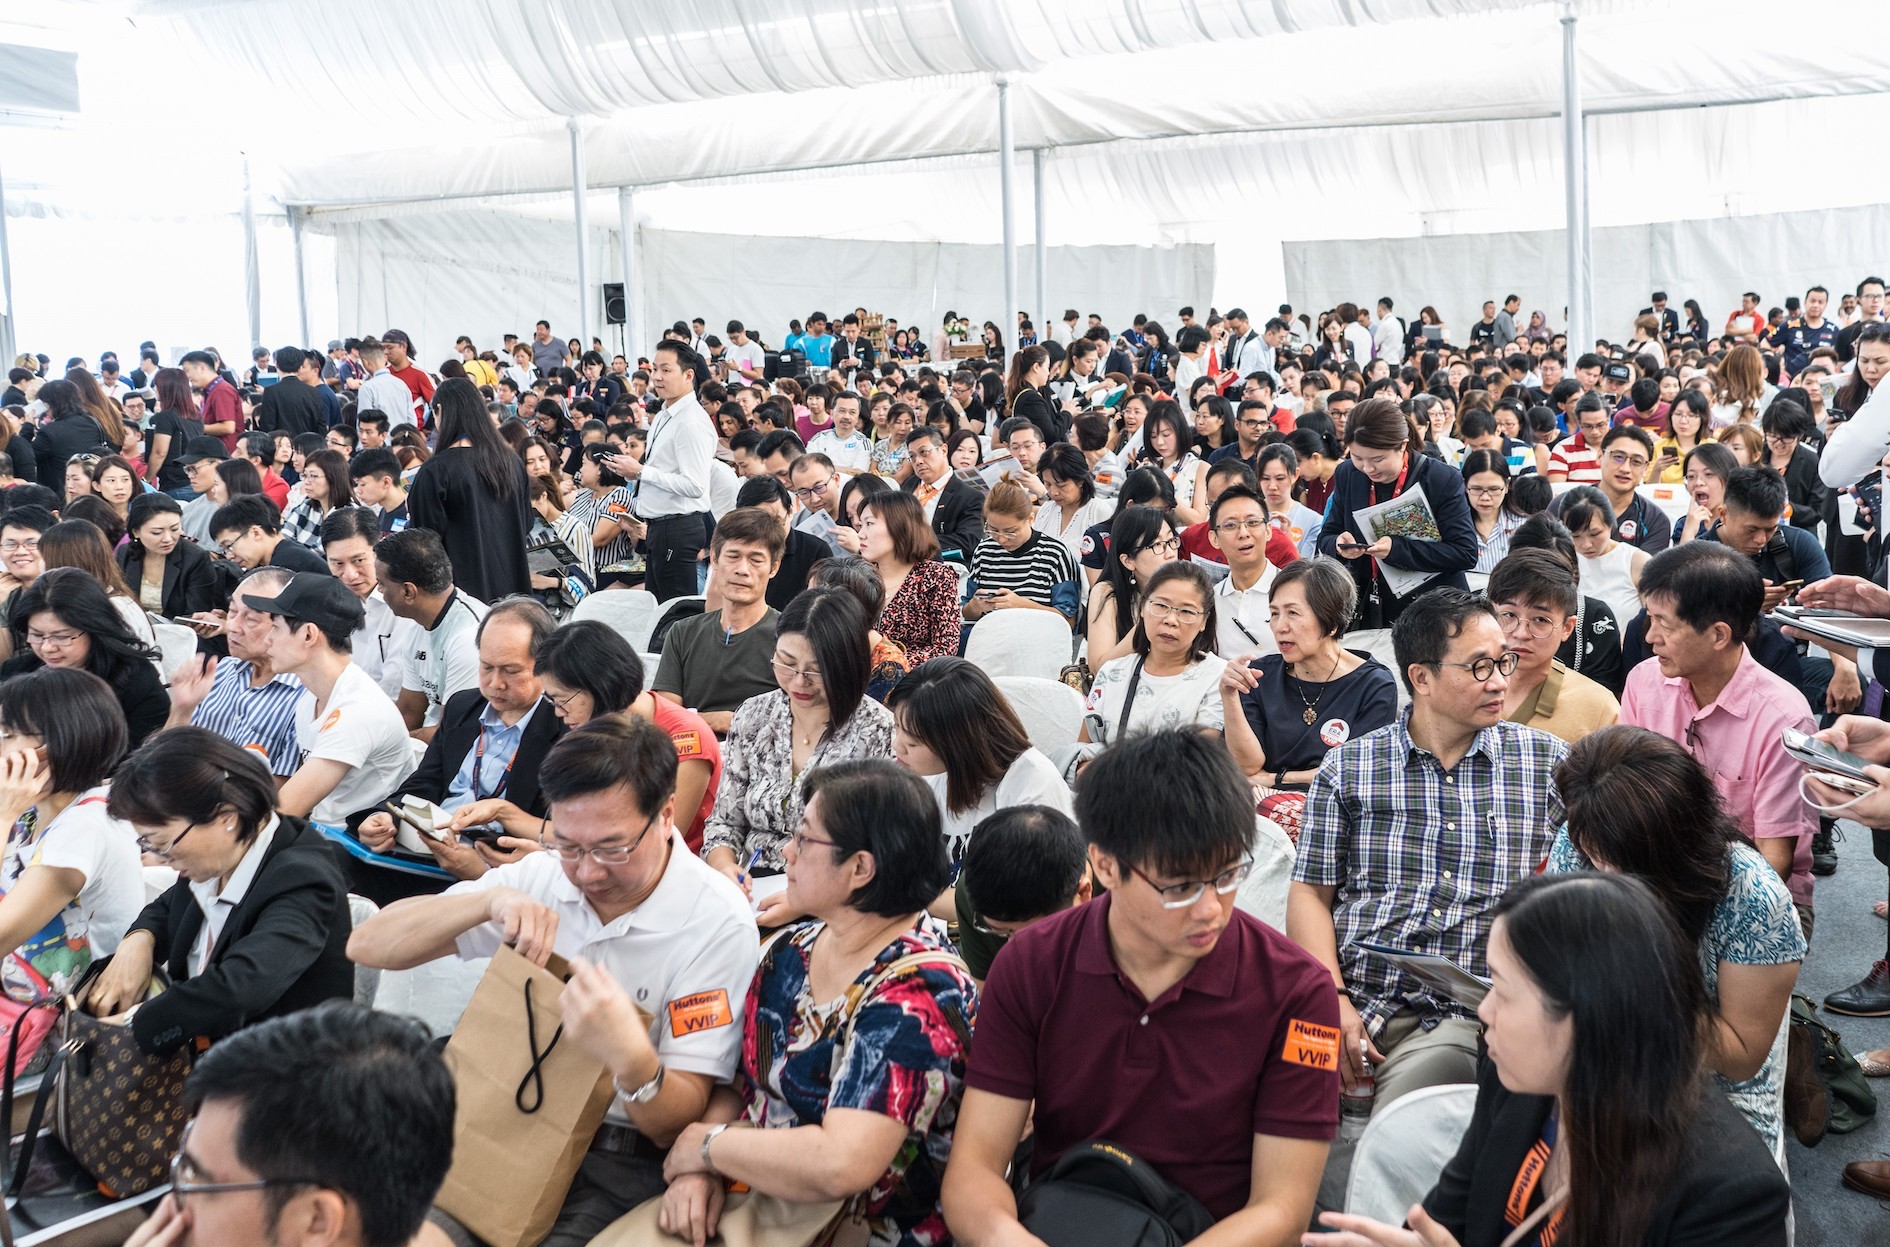 SINGHAIYI - The crowd in the balloting tent at Parc Clematis (Credit: SingHaiyi Group)